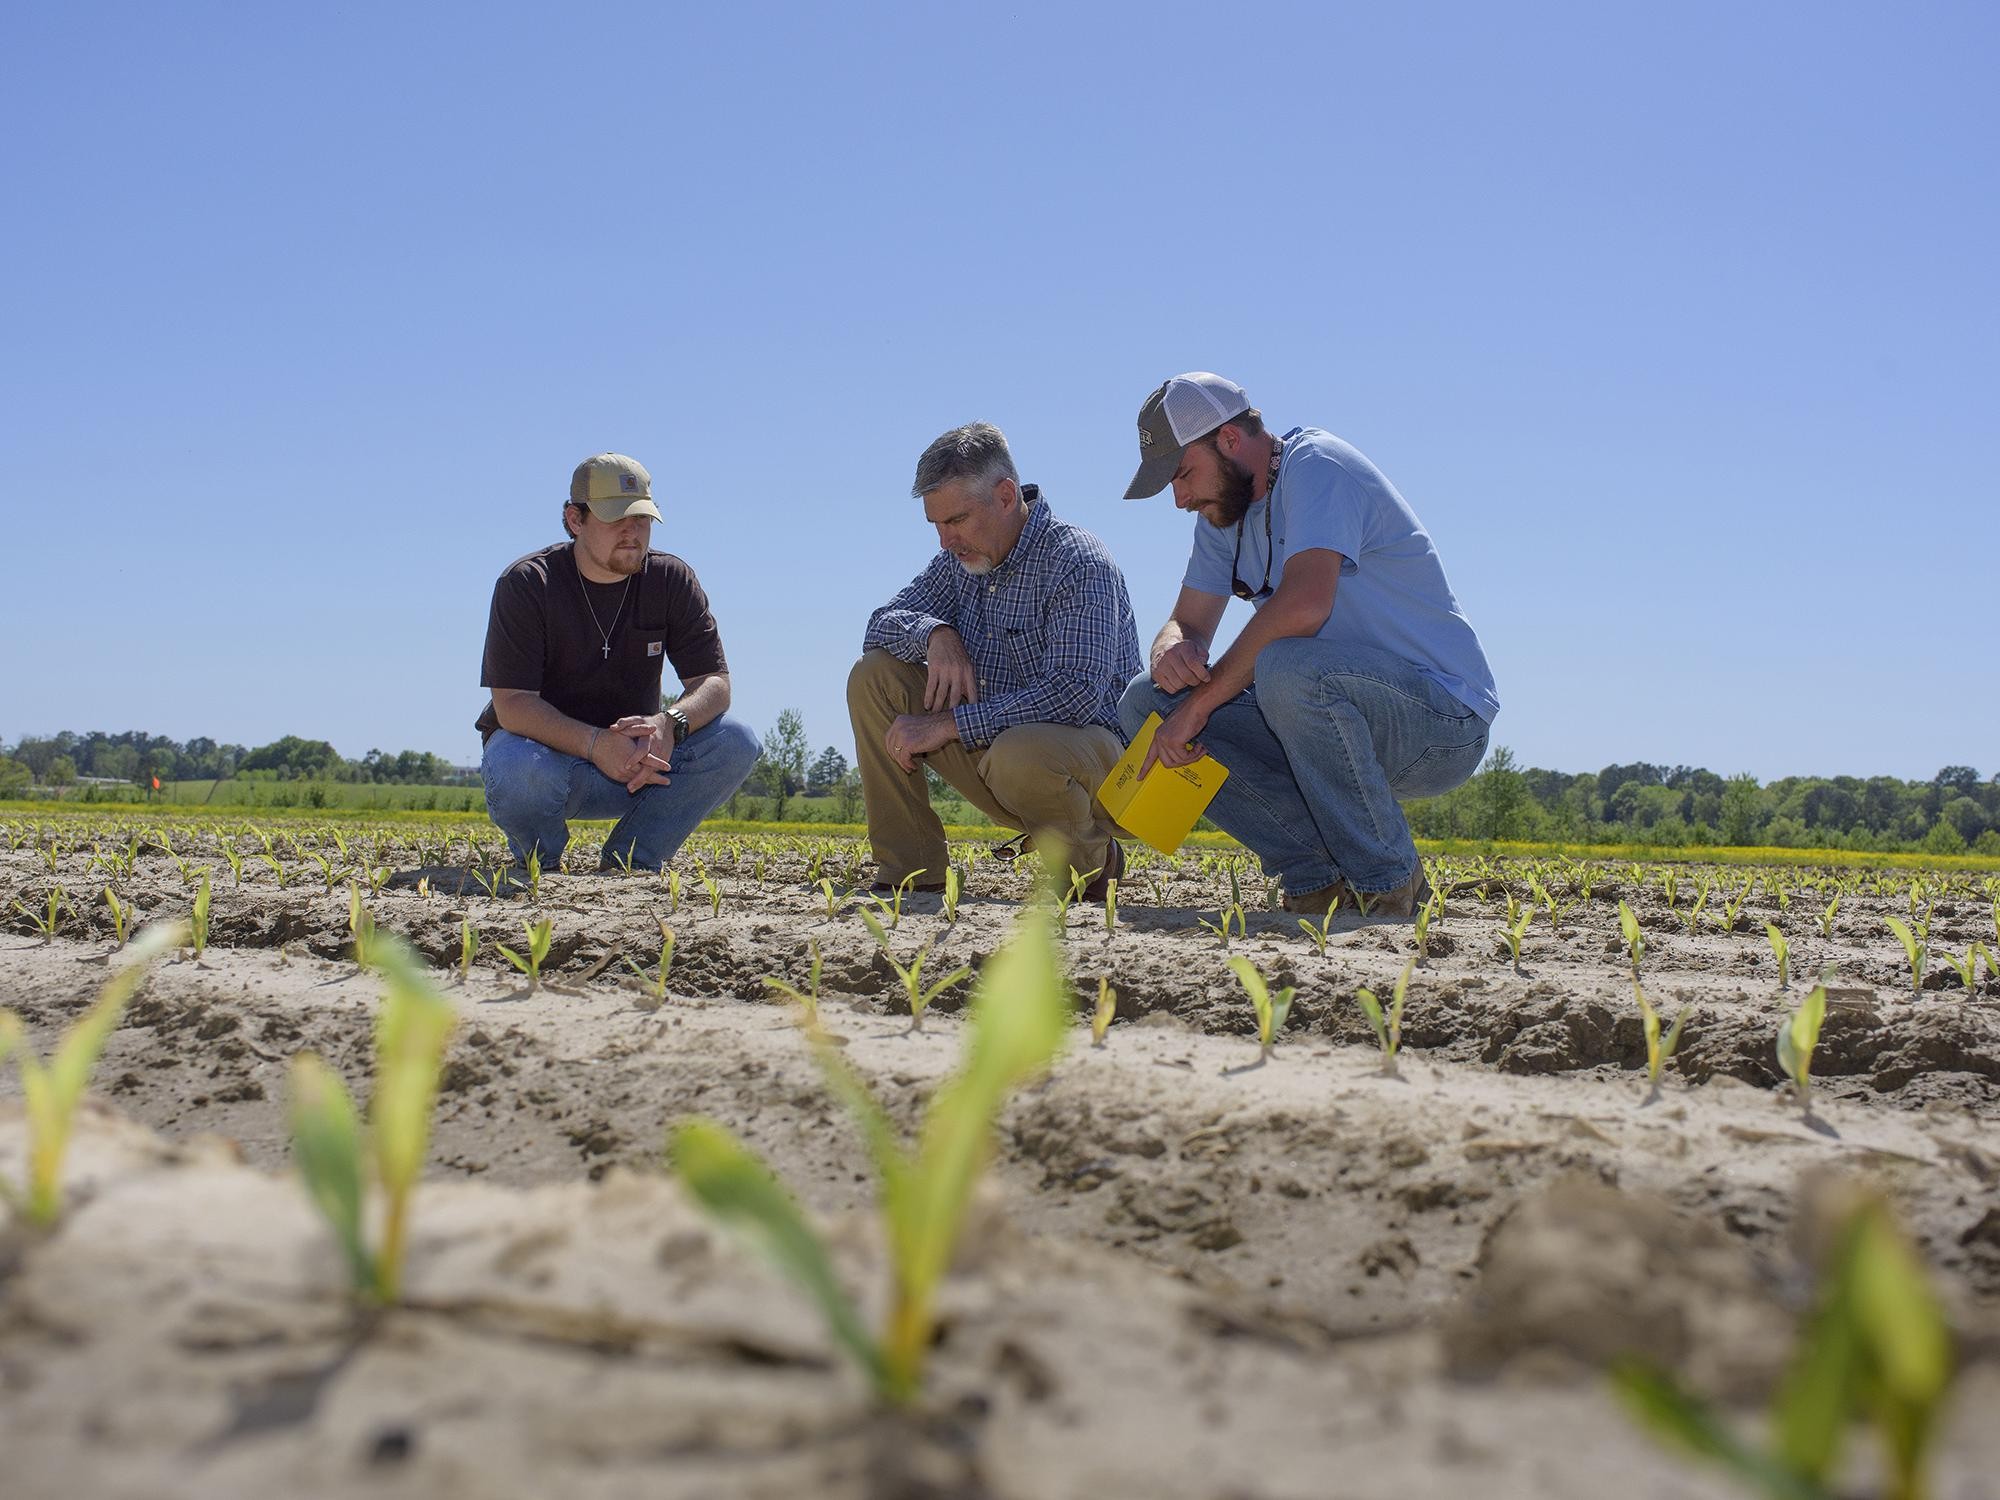 Three men crouch in a field to look at tiny corn seedlings.